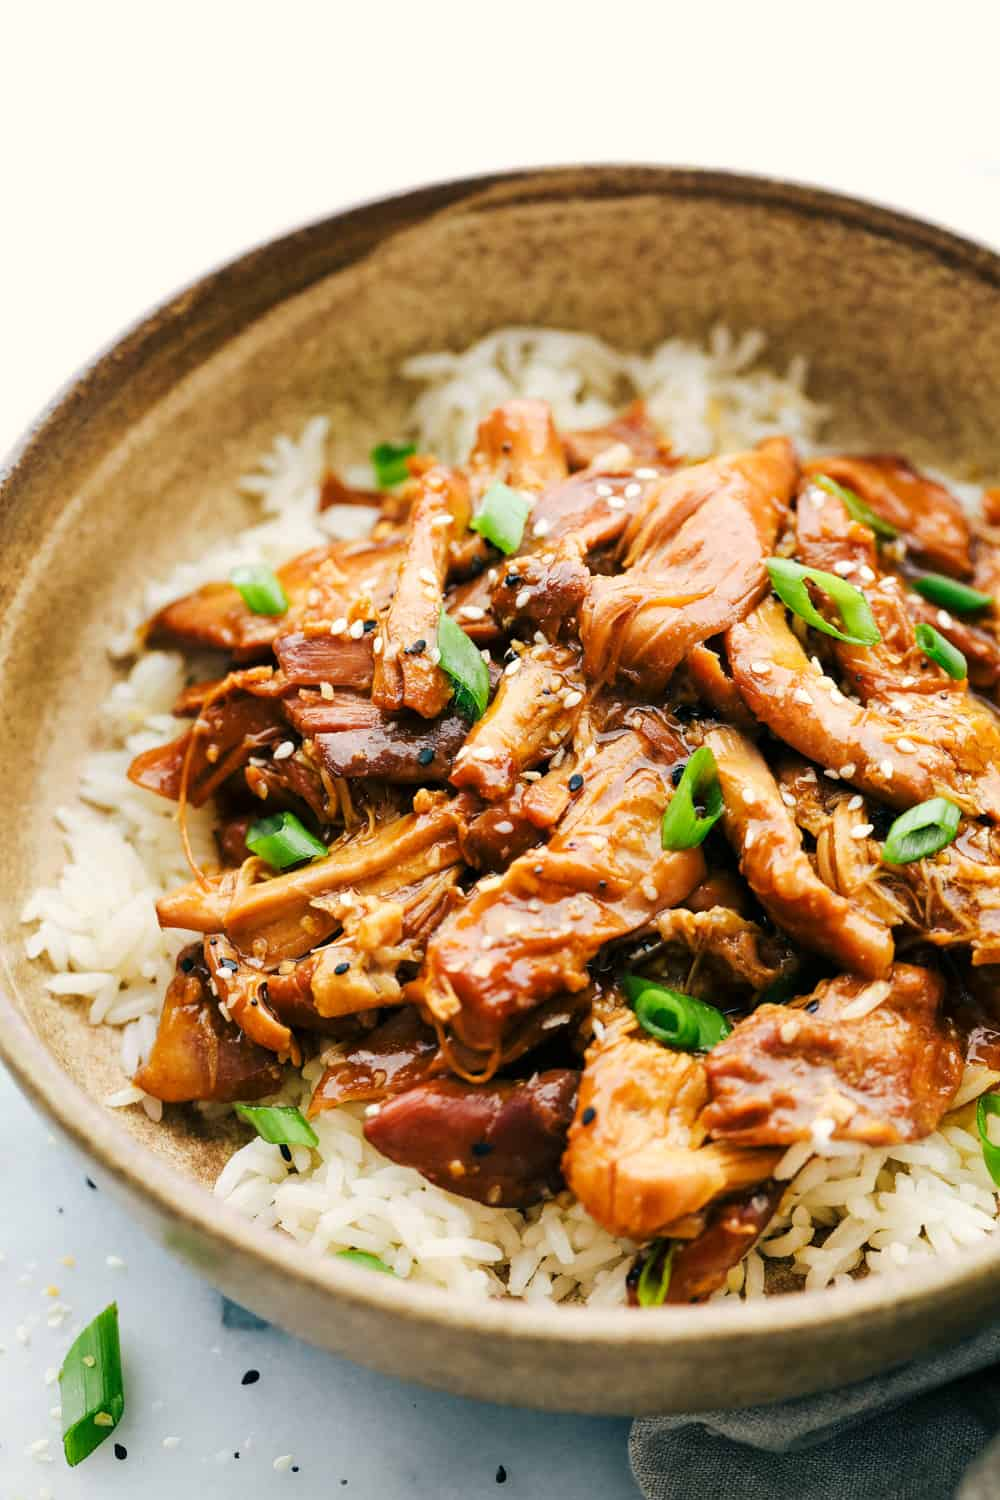 Honey garlic chicken in a bowl with rice and garnished with scallions.